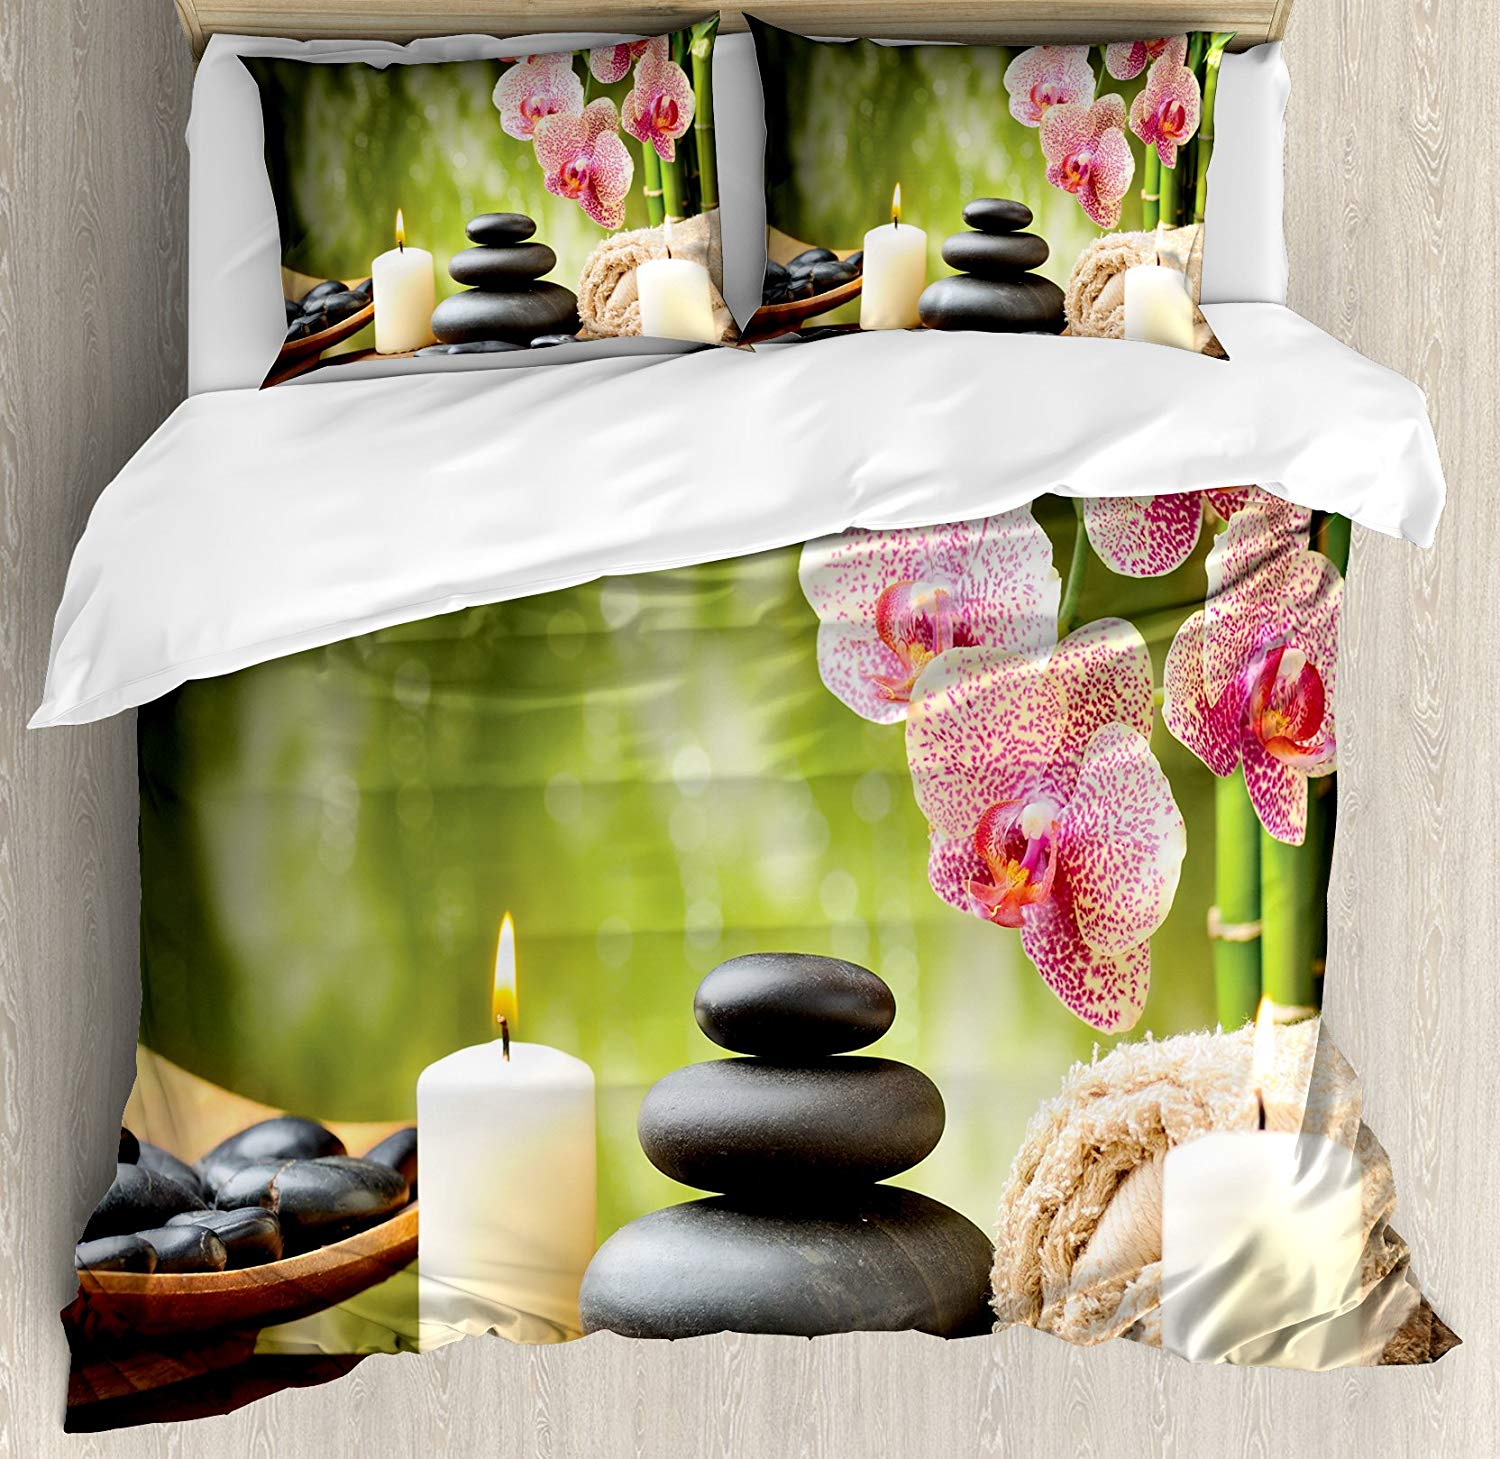 5f414485613 Lunarable Zen Duvet Cover Set King Size, Basalt Stones Bamboo Scented  Candles Flowers and Blurred